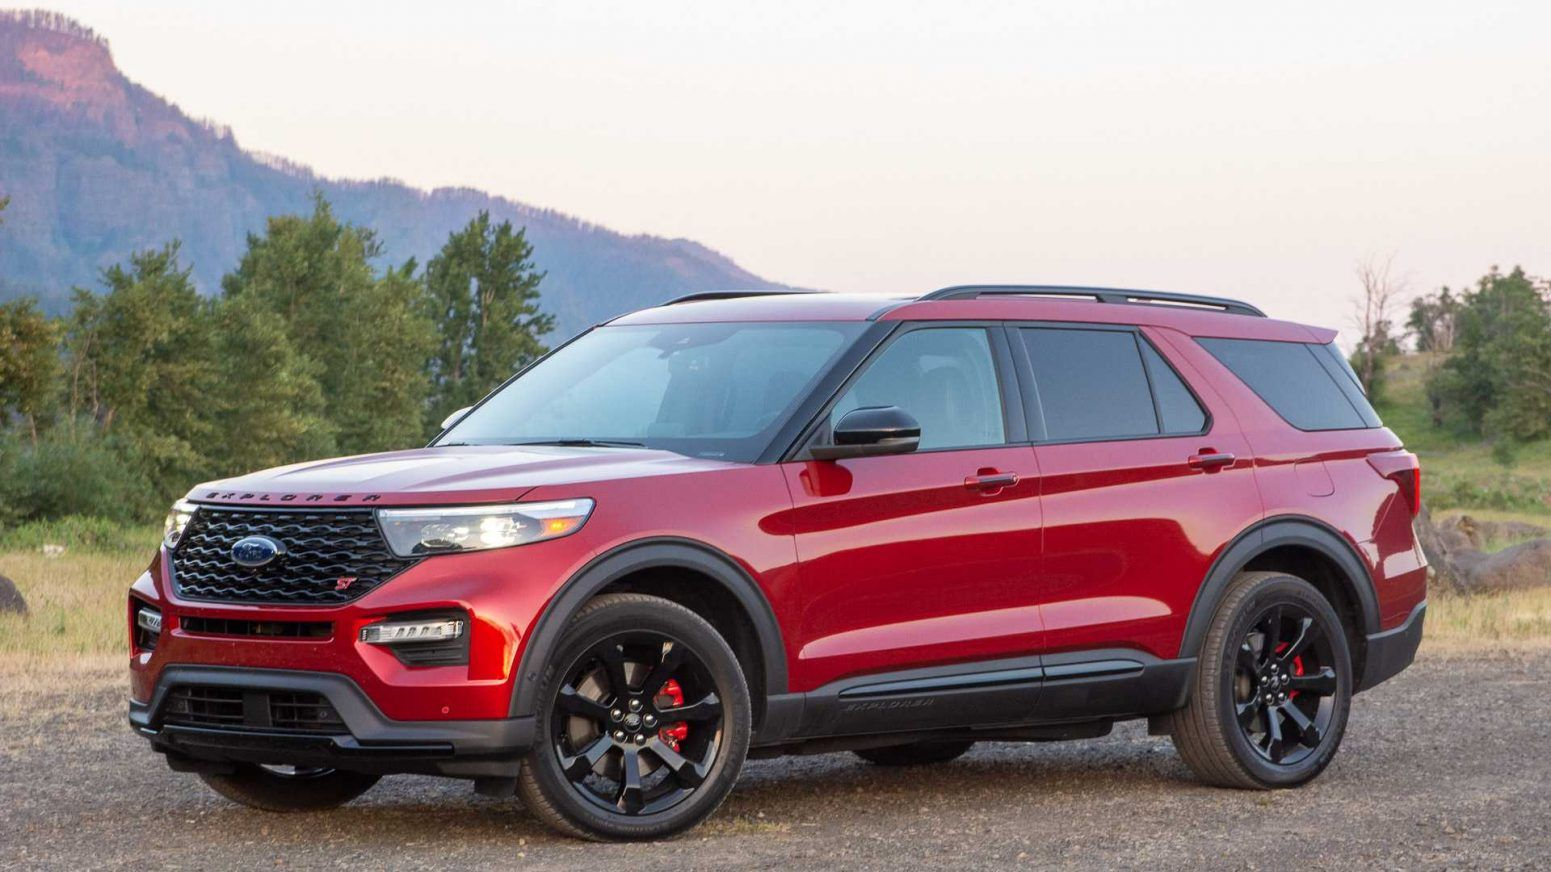 2021 Ford Explorer: What We Know And What To Expect In 2020